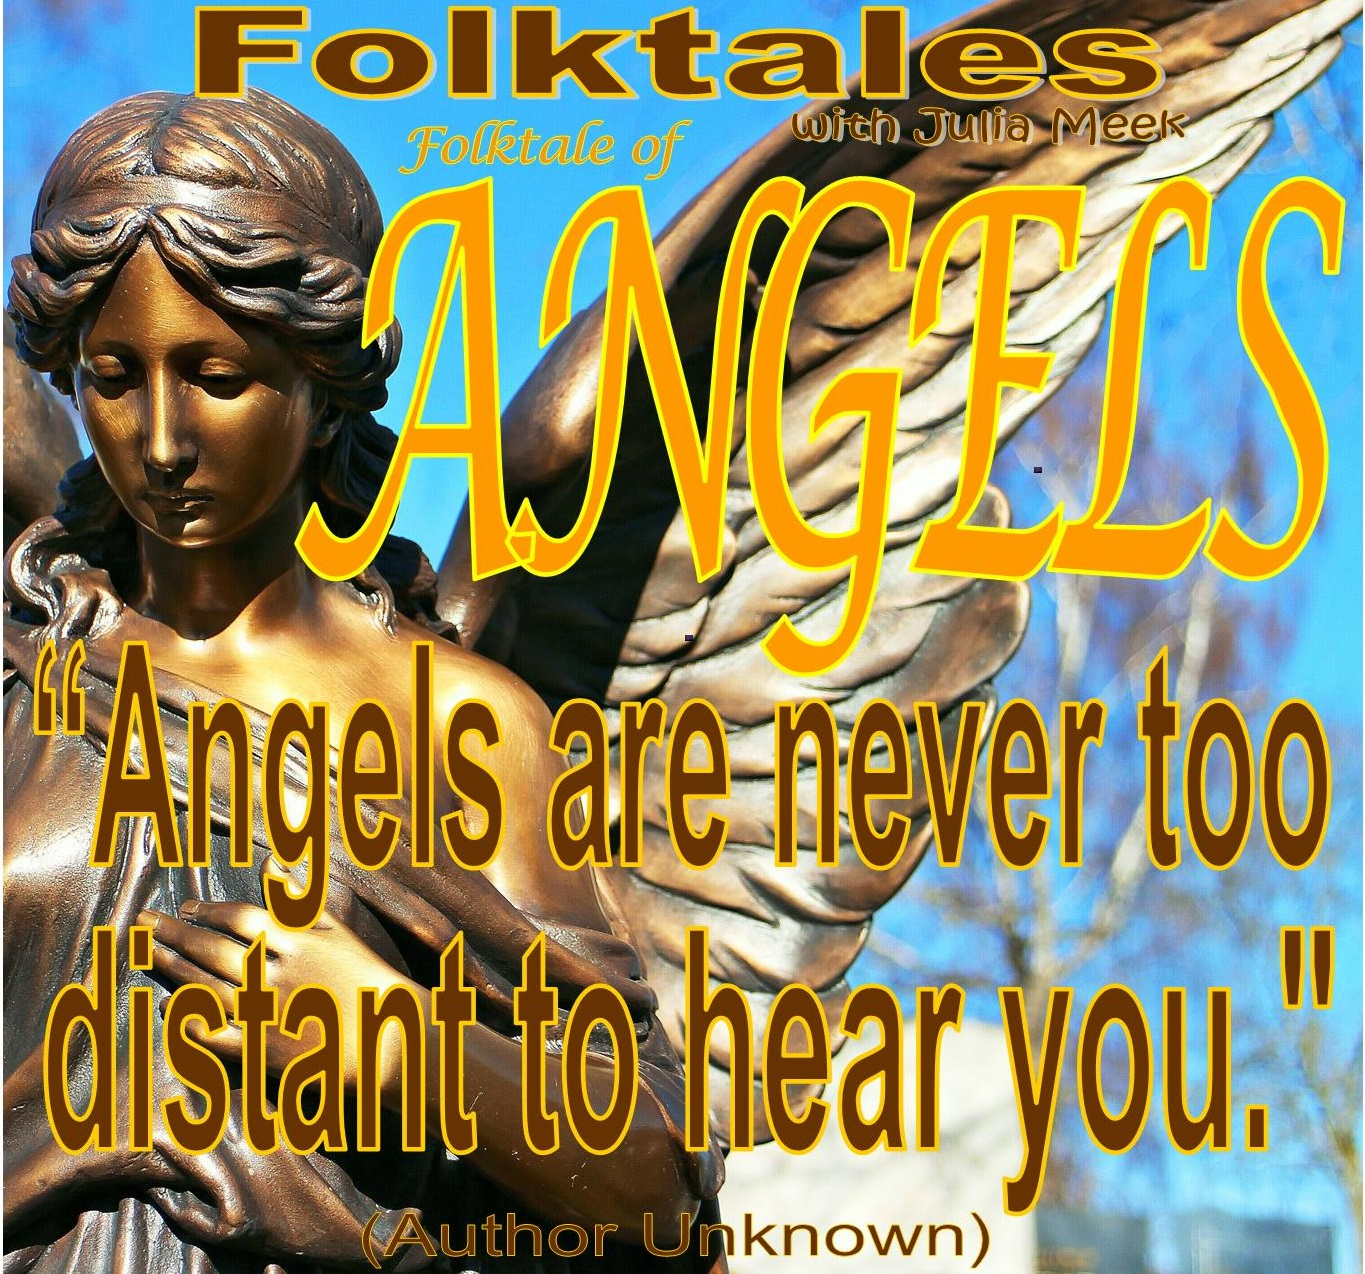 Caption: WBOI's Folktale of Angels, Credit: Julia Meek